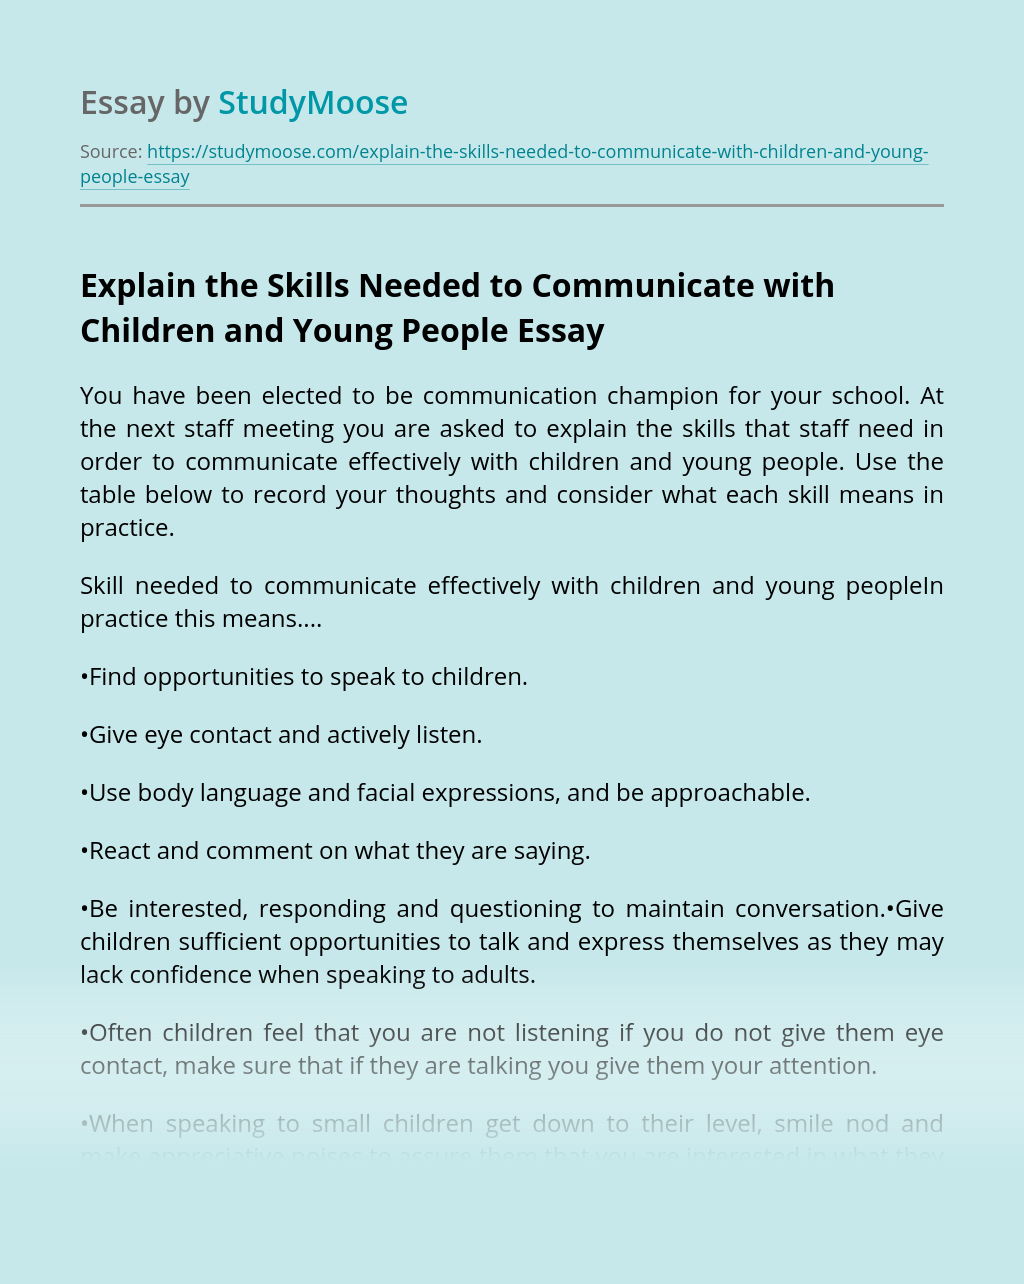 Explain the Skills Needed to Communicate with Children and Young People